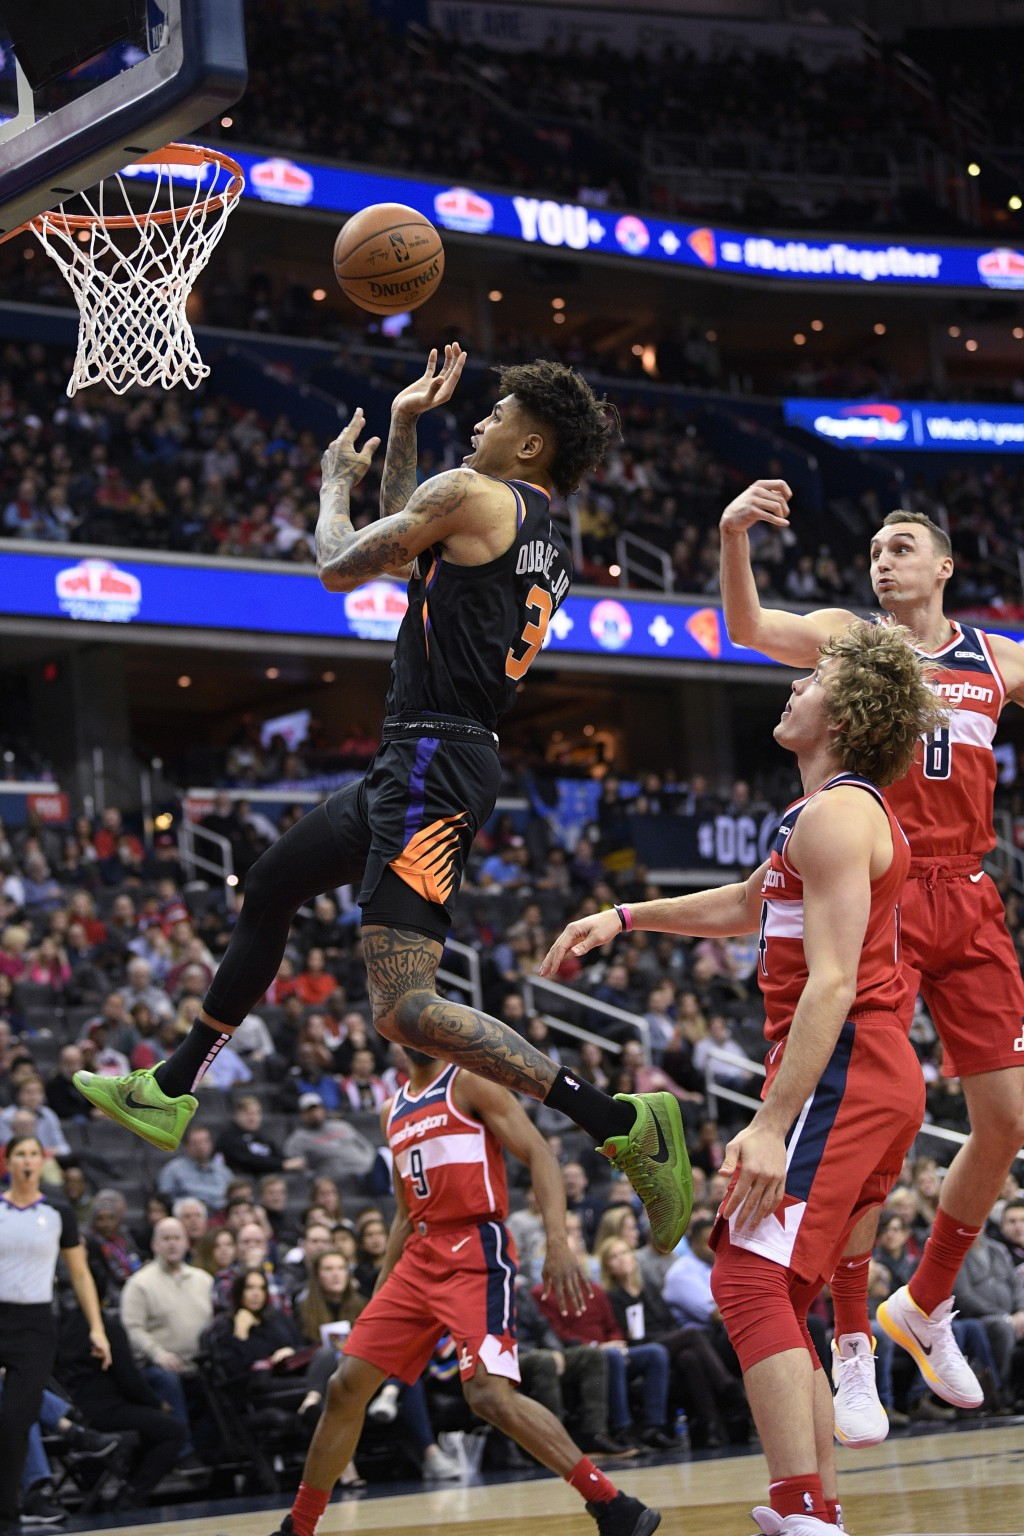 Phoenix Suns forward Kelly Oubre Jr. (3) loses the ball as Washington Wizards forward Sam Dekker (8), guard Ron Baker (84) and guard Chasson Randle (9